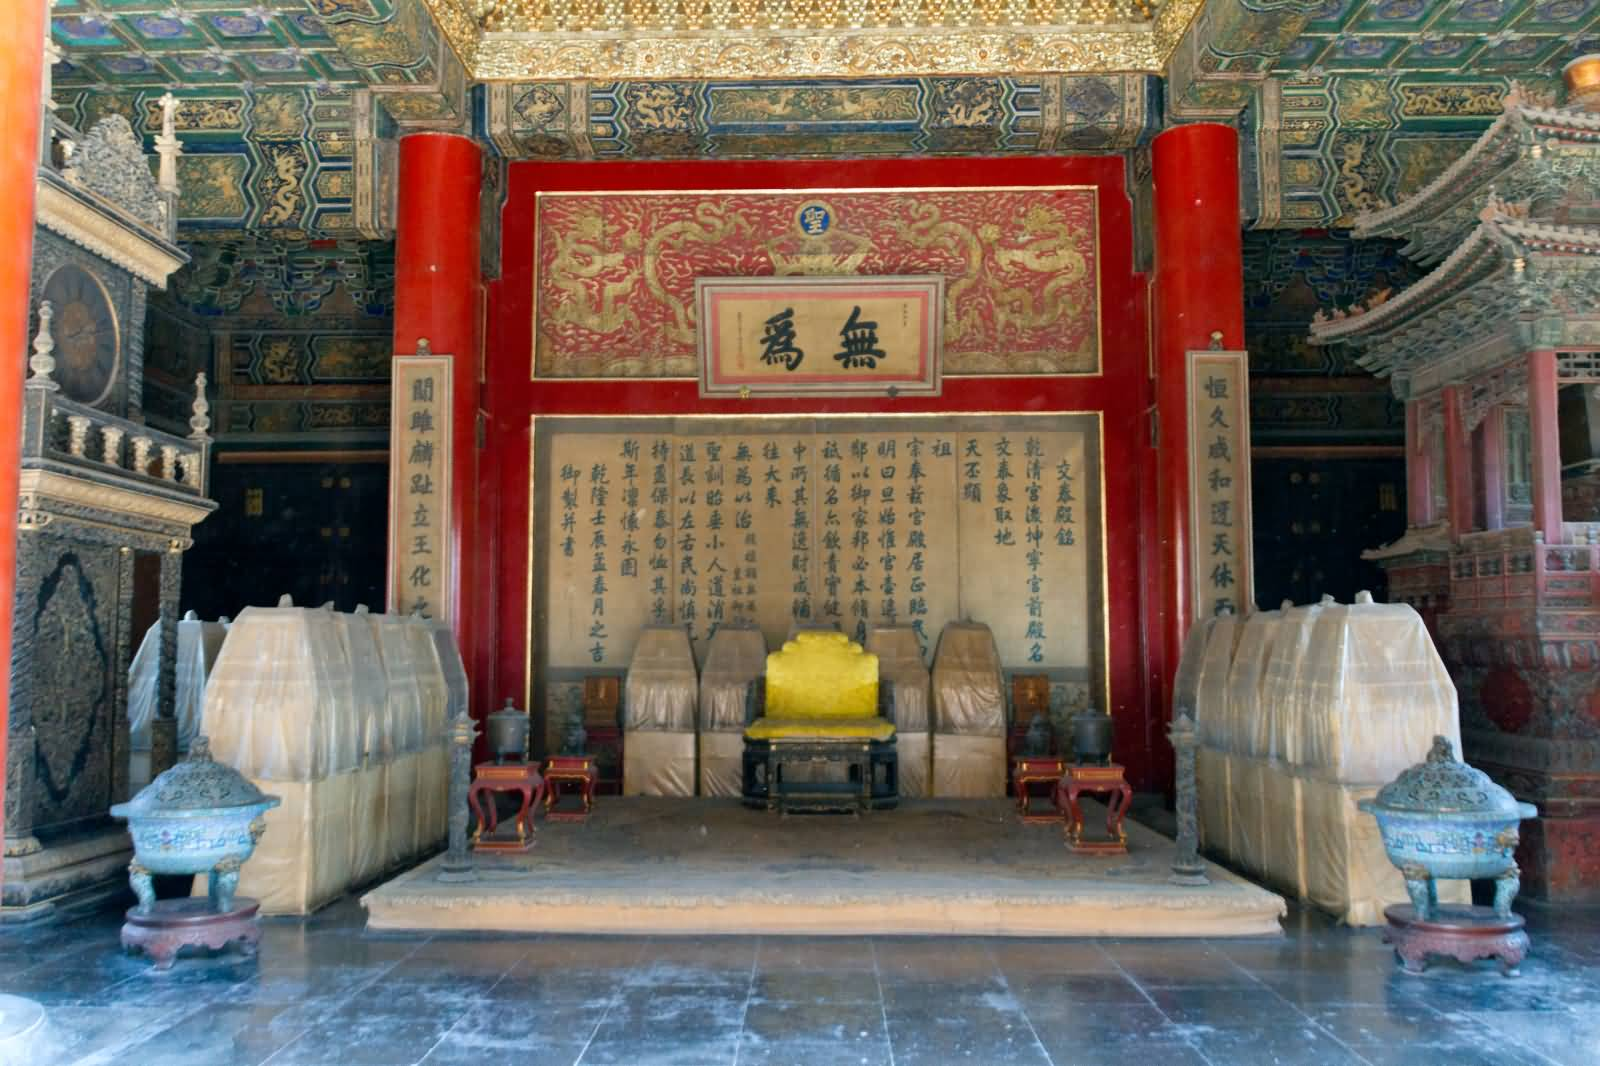 40 Adorable Inside Pictures Of Forbidden City